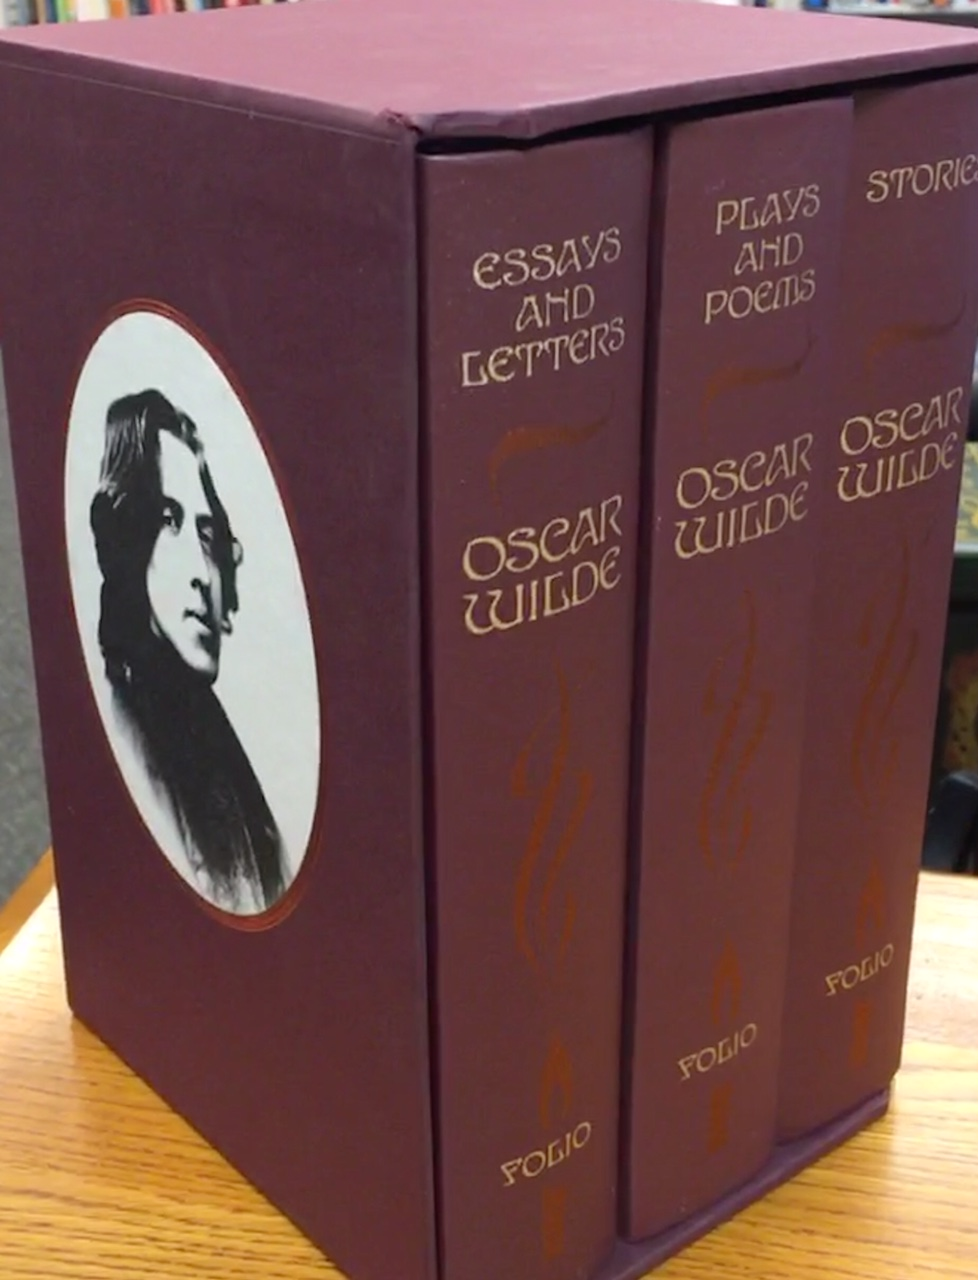 Image for Oscar Wilde: Plays and Poems / Essays and Letters / Stories (3 Volume Set)